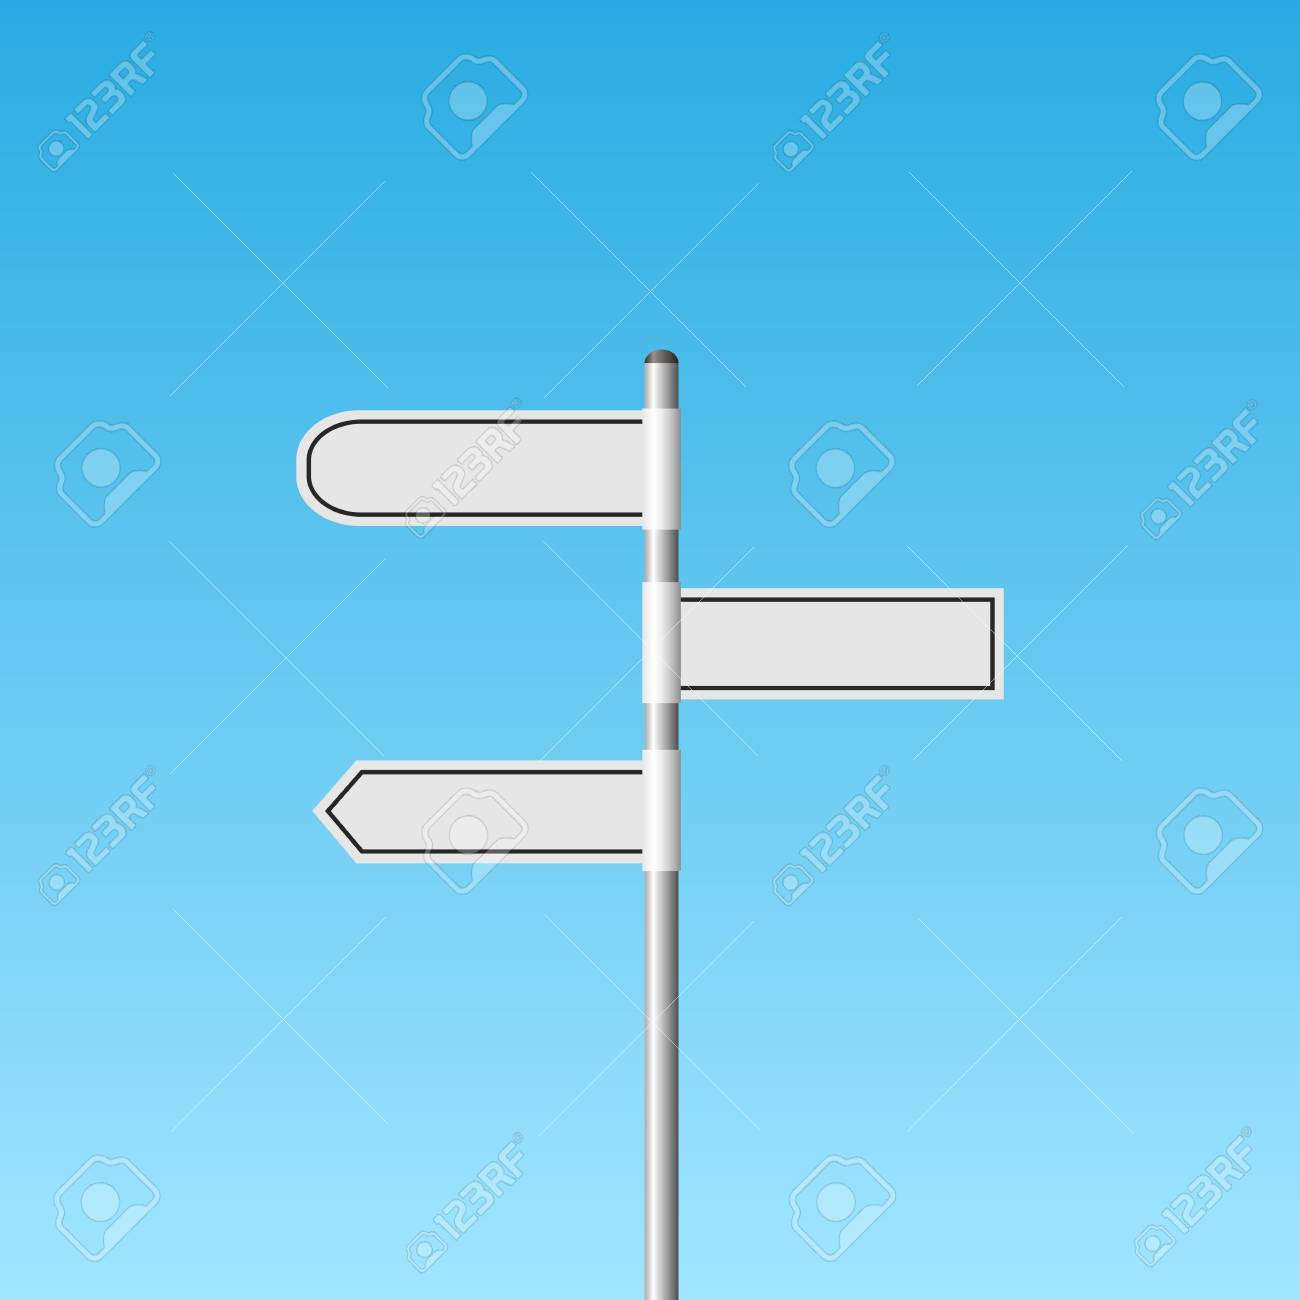 Illustration of a blank white signpost against a blue sky background. - 97016239